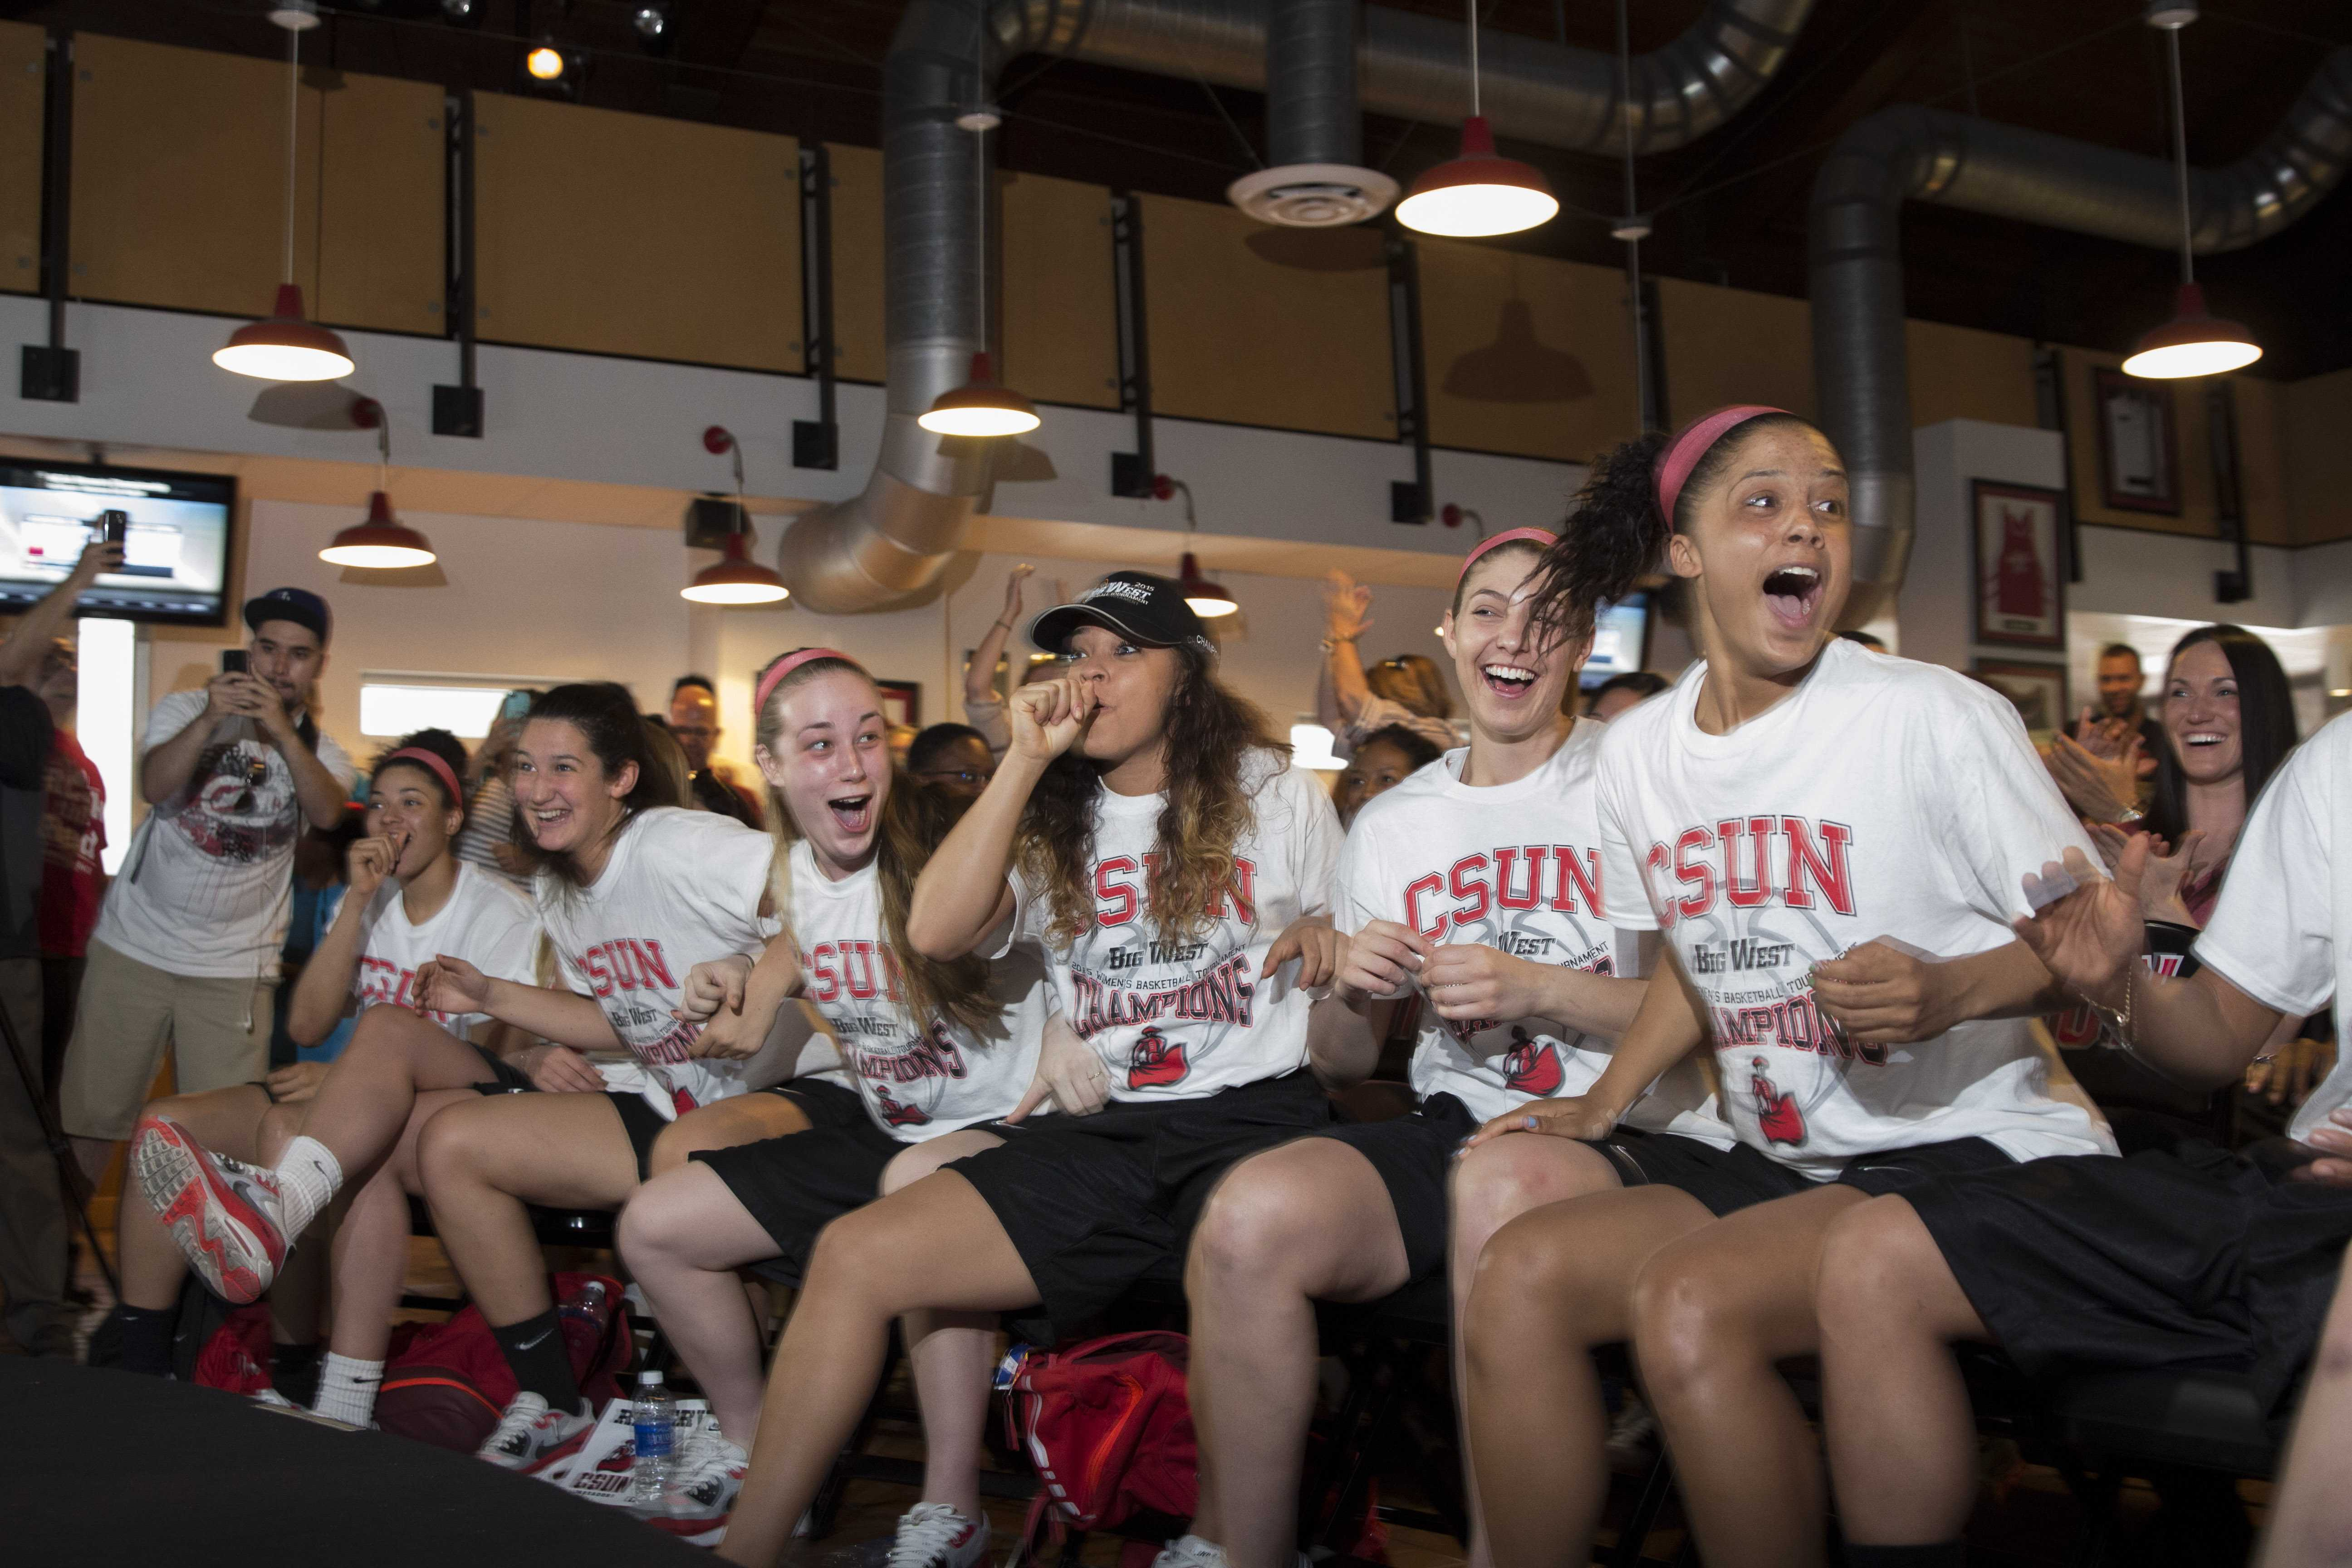 The women's basketball team reacts after learning they were selected as a No. 13 seed in the Oklahoma City Region bracket, and will face the No. 4 Stanford Cardinals in the first round of the Women's 2015 NCAA Tournmanet, on March 16, 2015 in the Pub. (Trevor Stamp / Multimedia Editor)